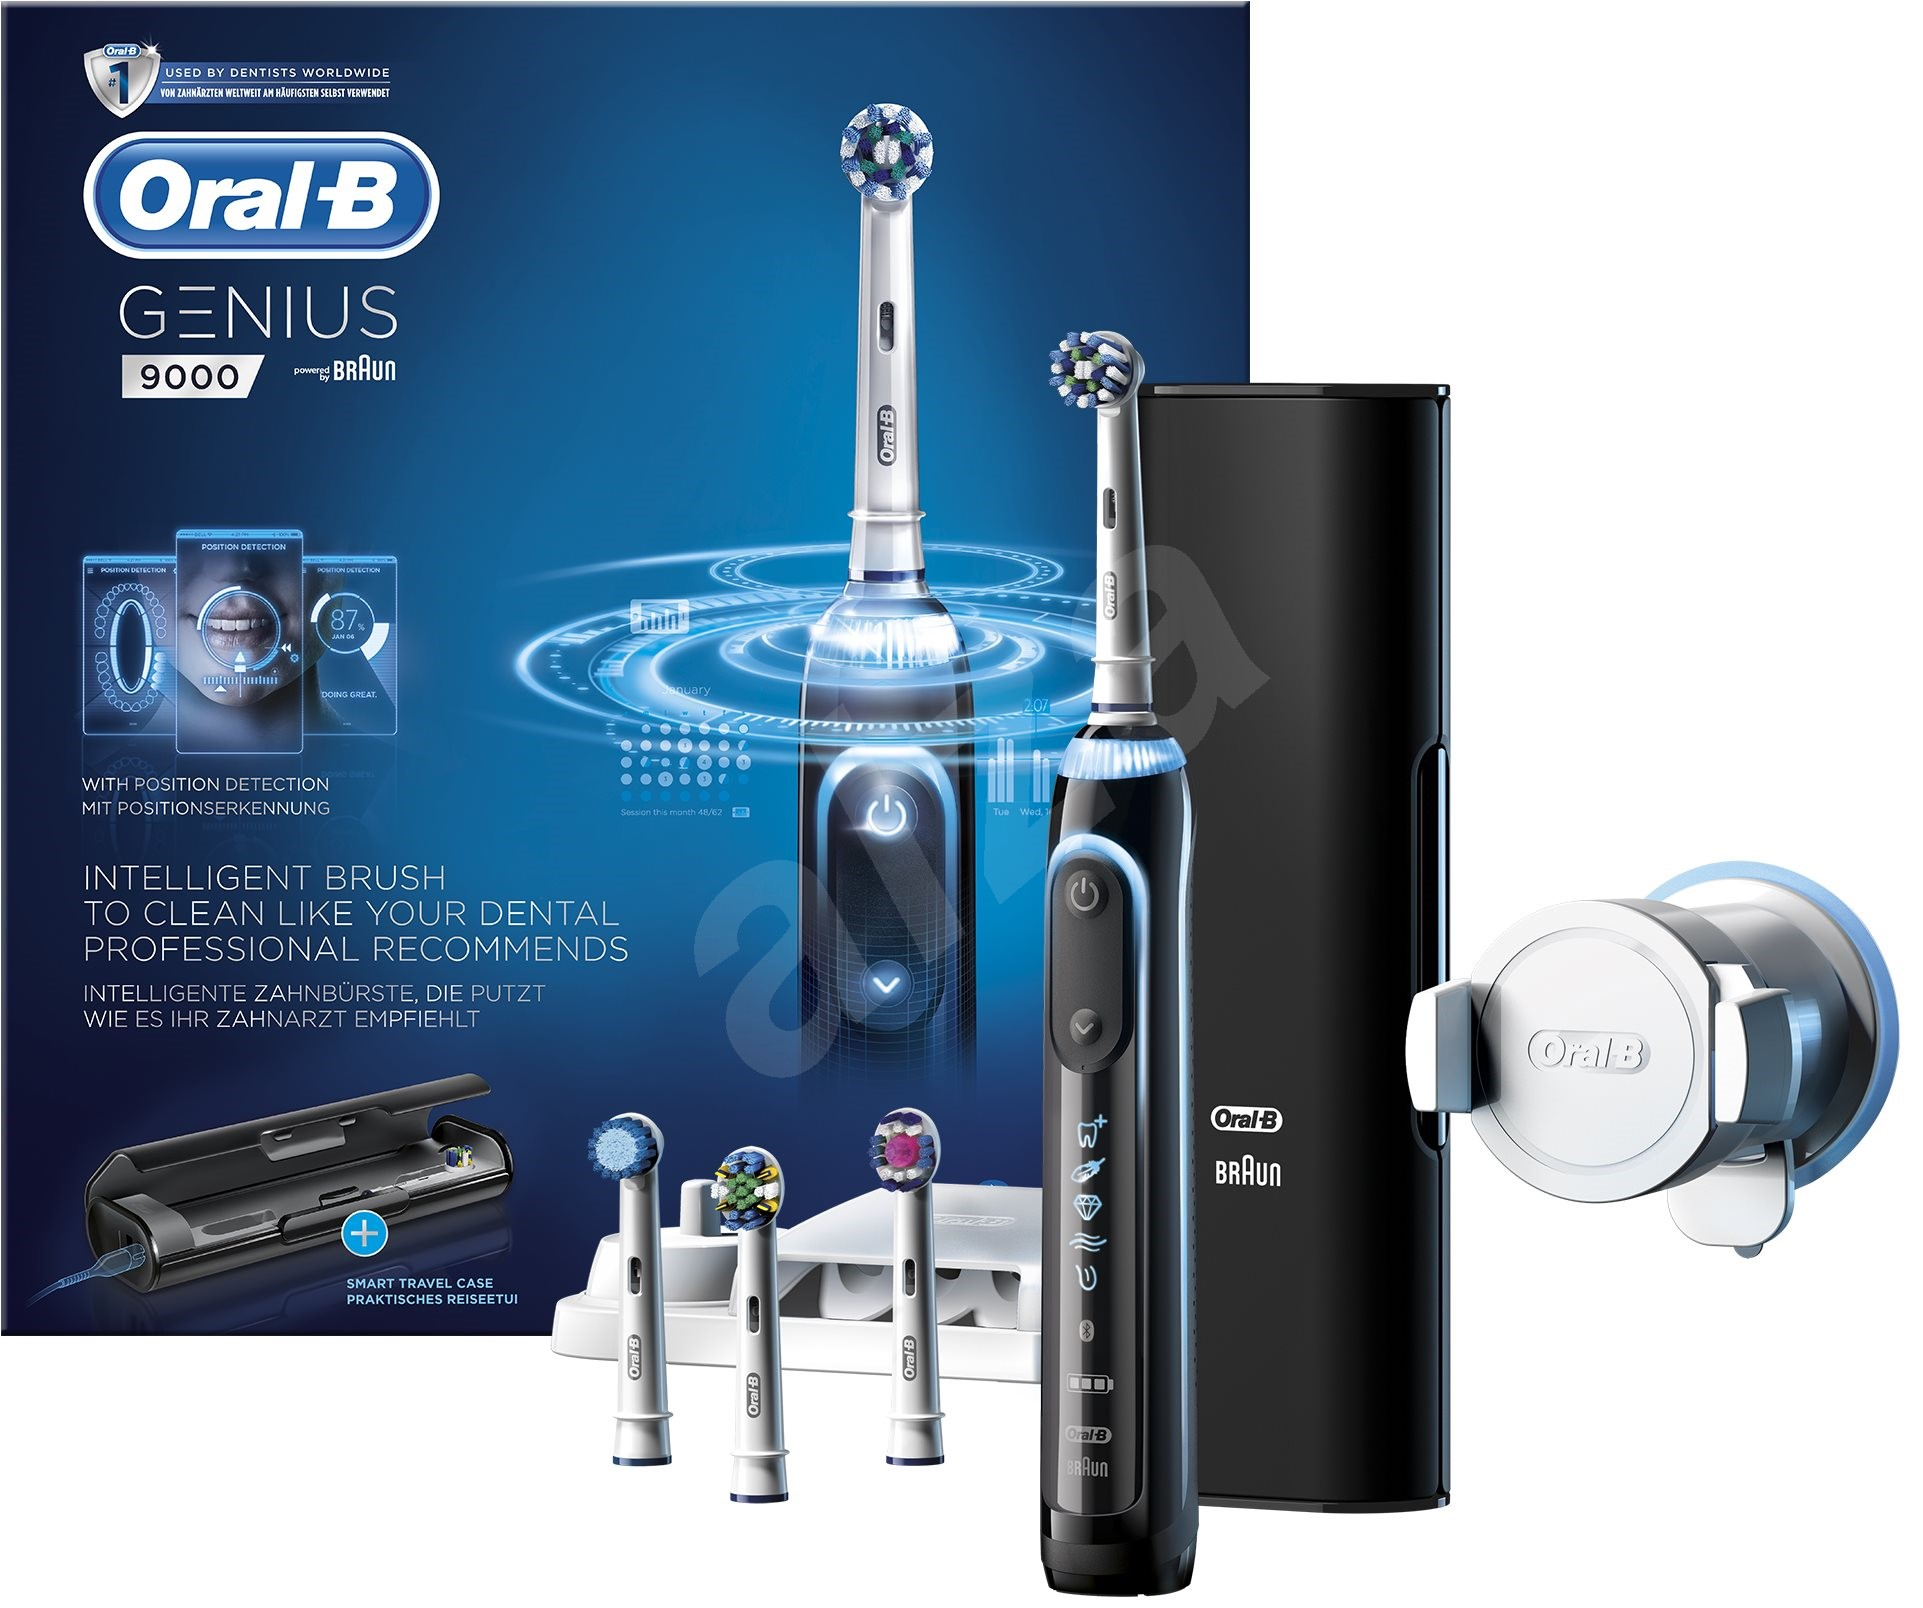 oral b genius pro 9000 black electric toothbrush. Black Bedroom Furniture Sets. Home Design Ideas